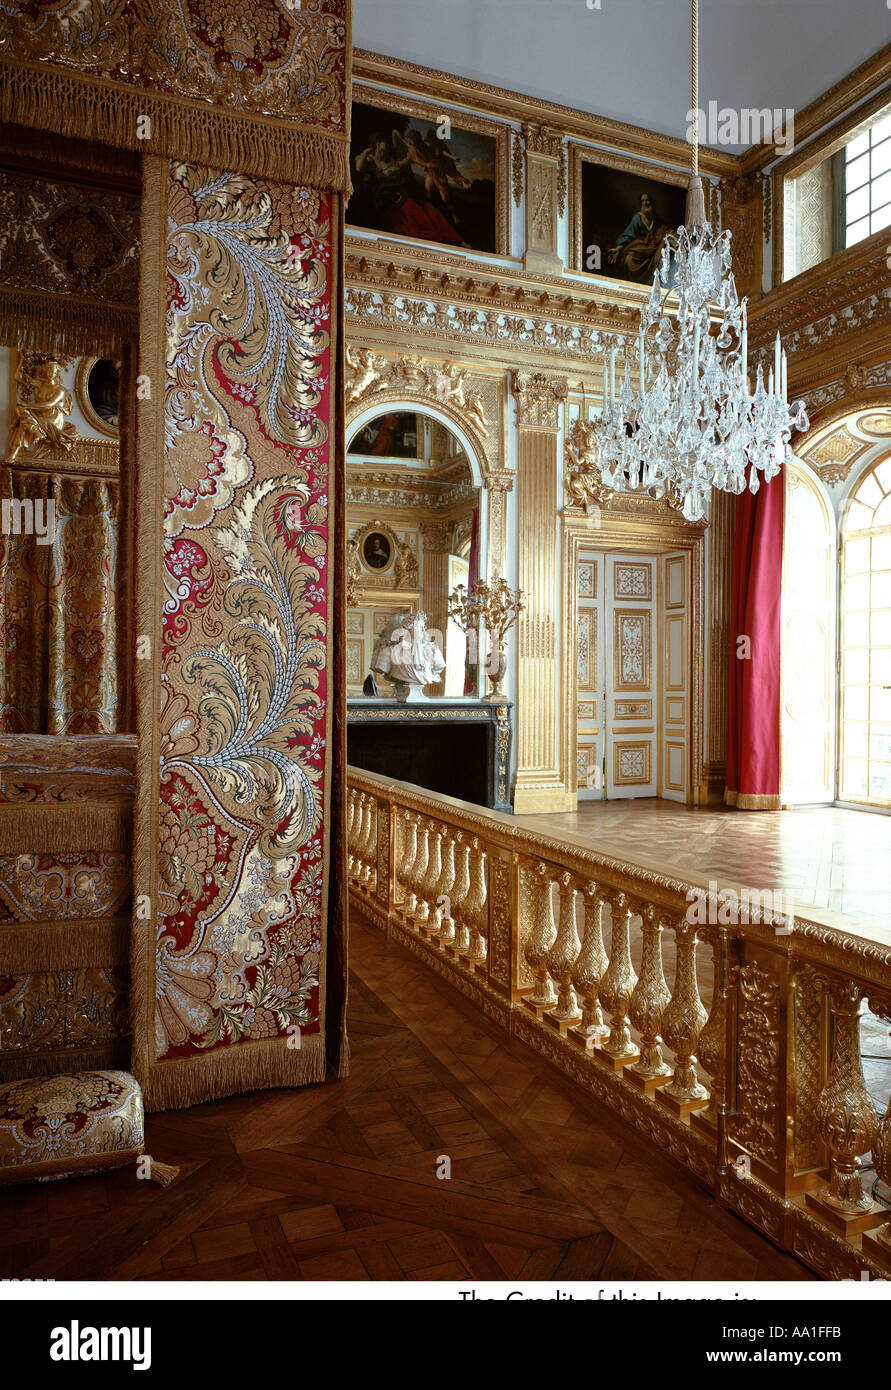 Palace of versailles chambre du roi louis xiv stock photo for Chambre louis xvi versailles